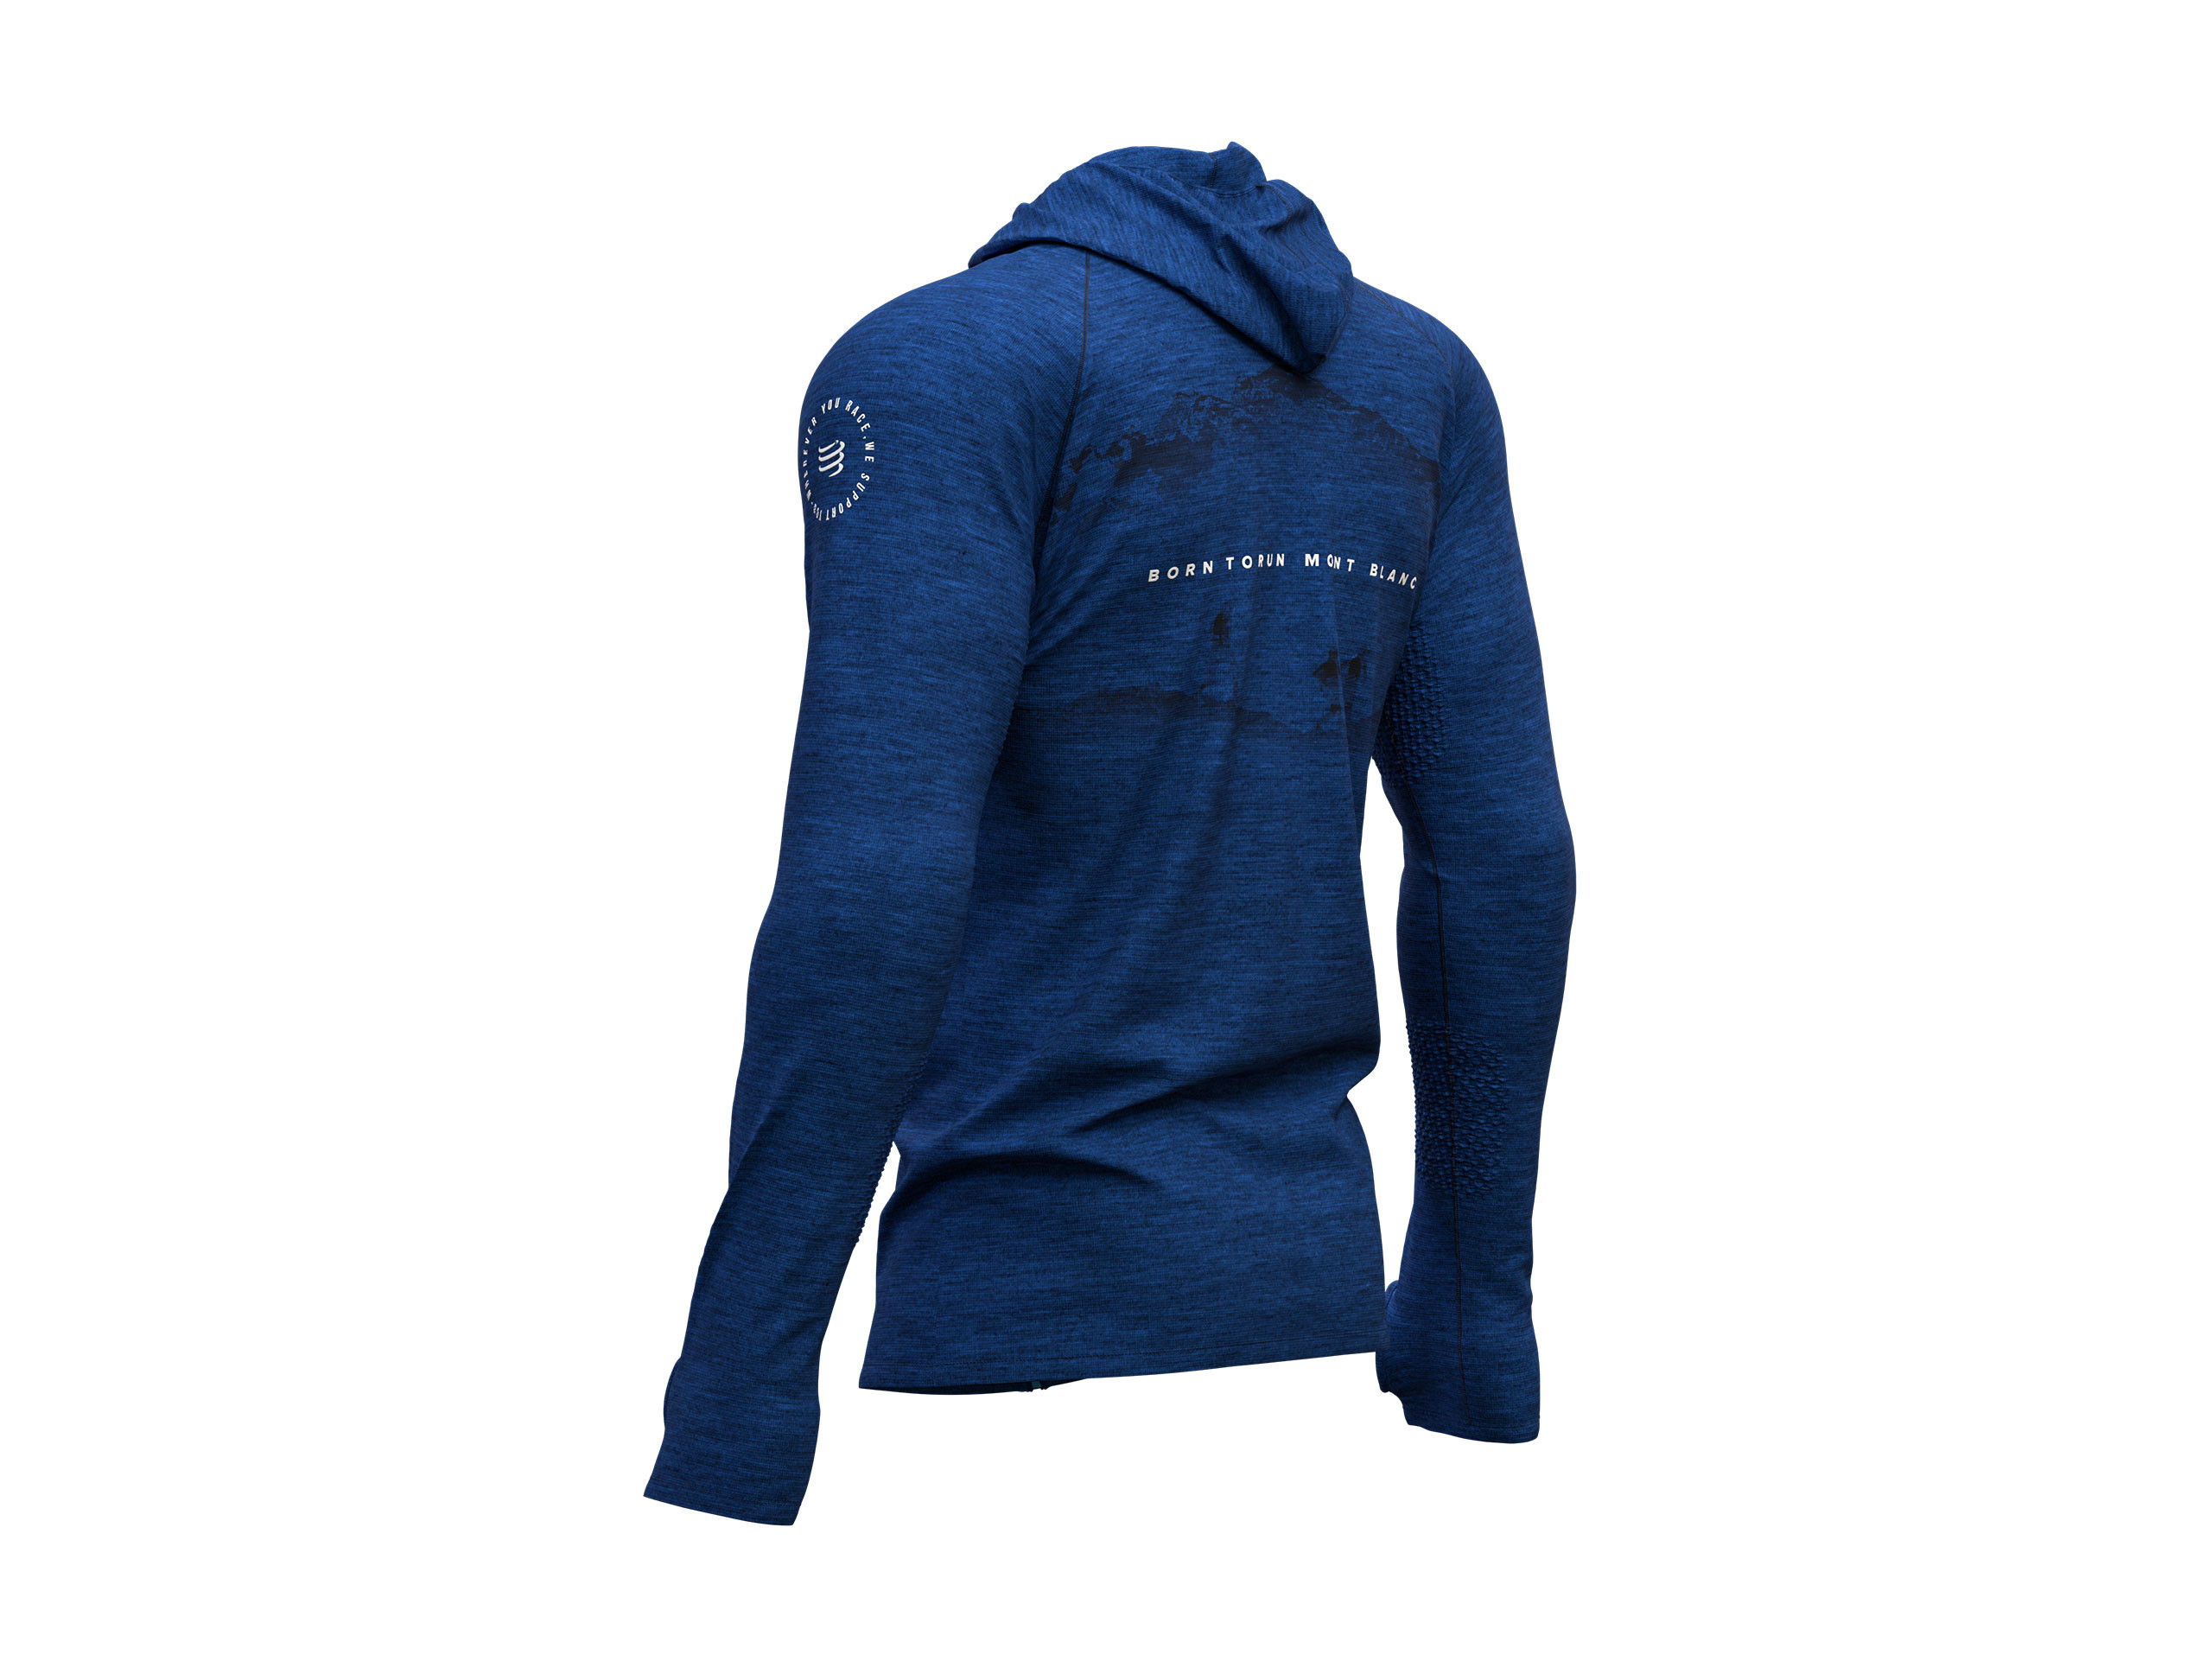 3D Thermo Seamless Zip Hoodie - Mont Blanc 2019